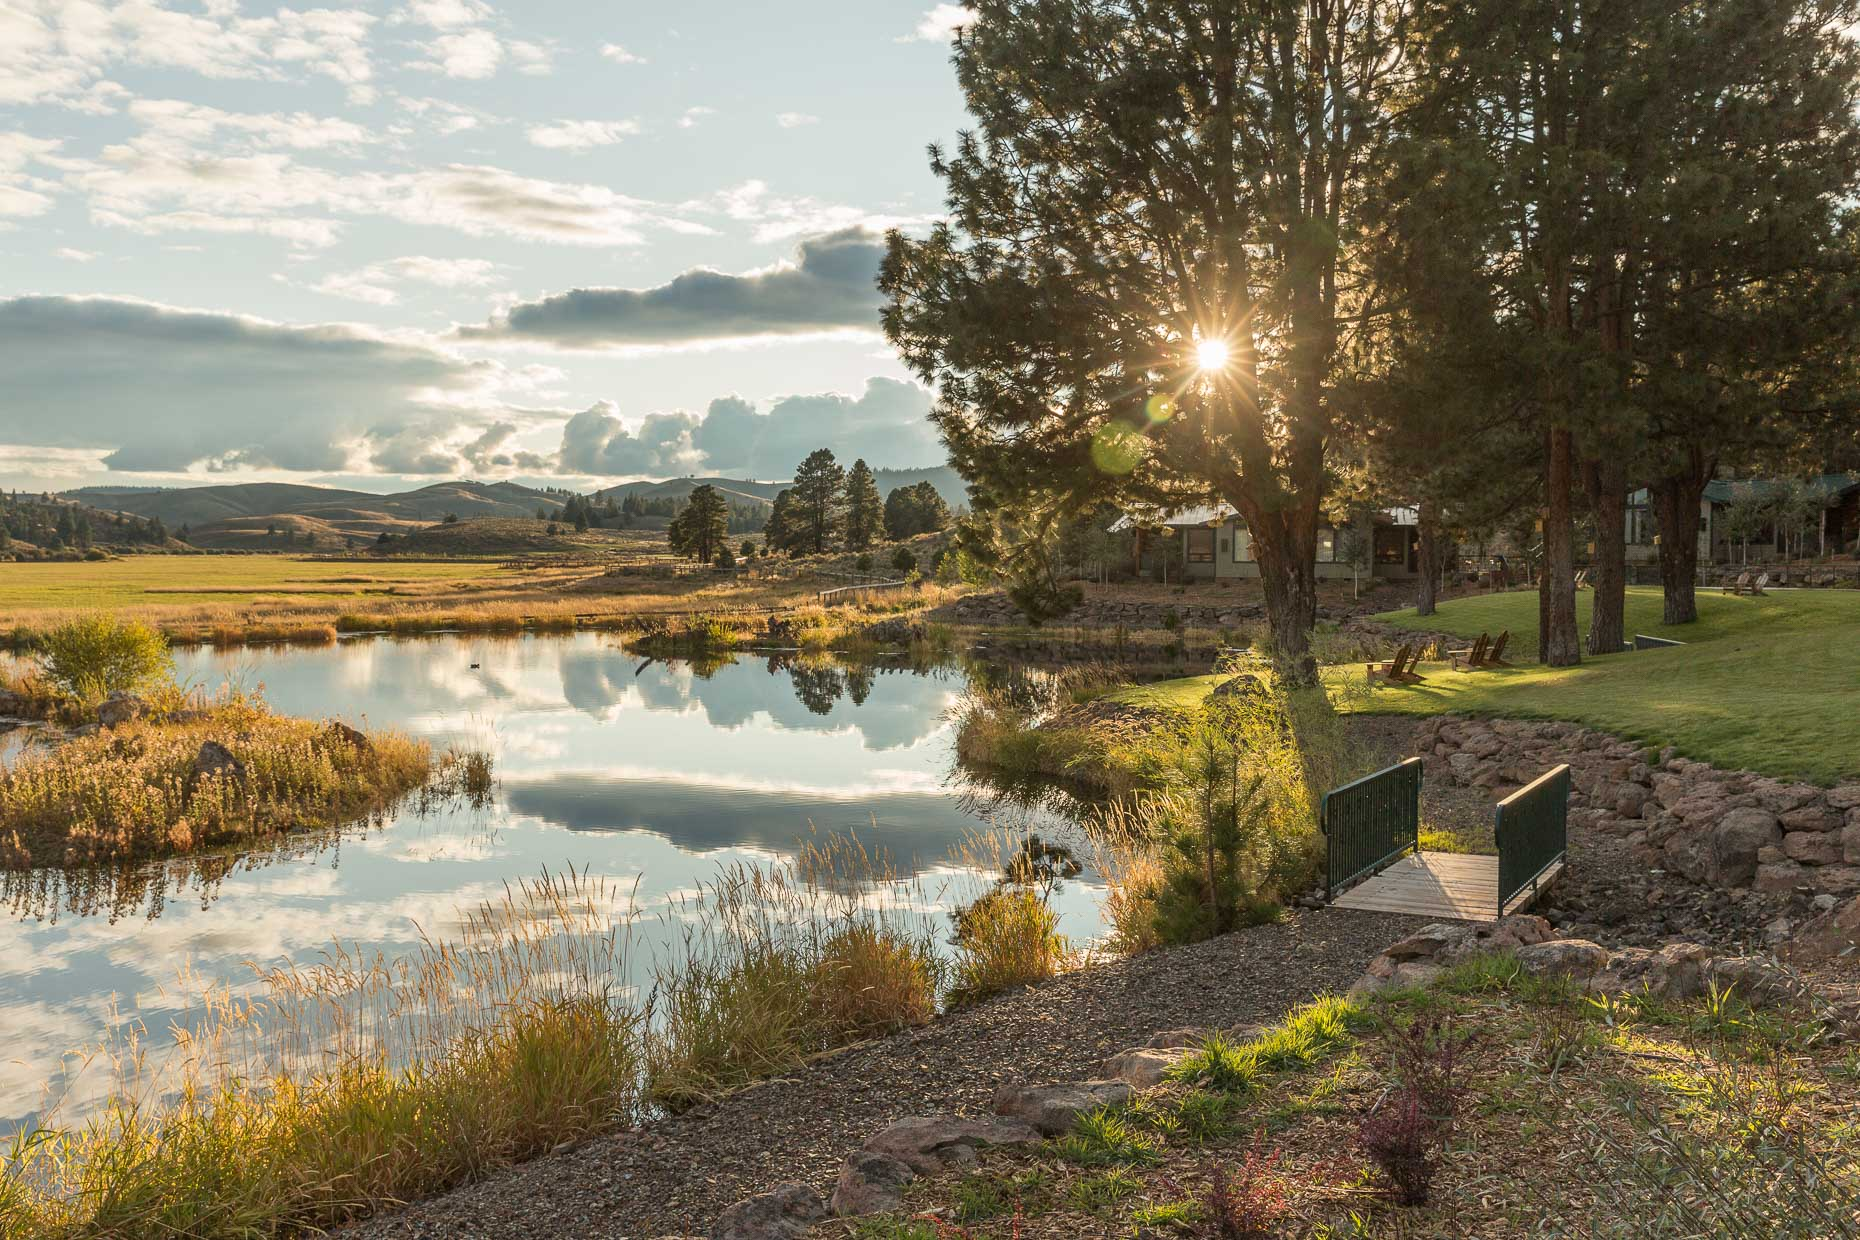 Sunset over pond at Silvies Valley Ranch with bridge, lawn chairs, trees, David Zaitz